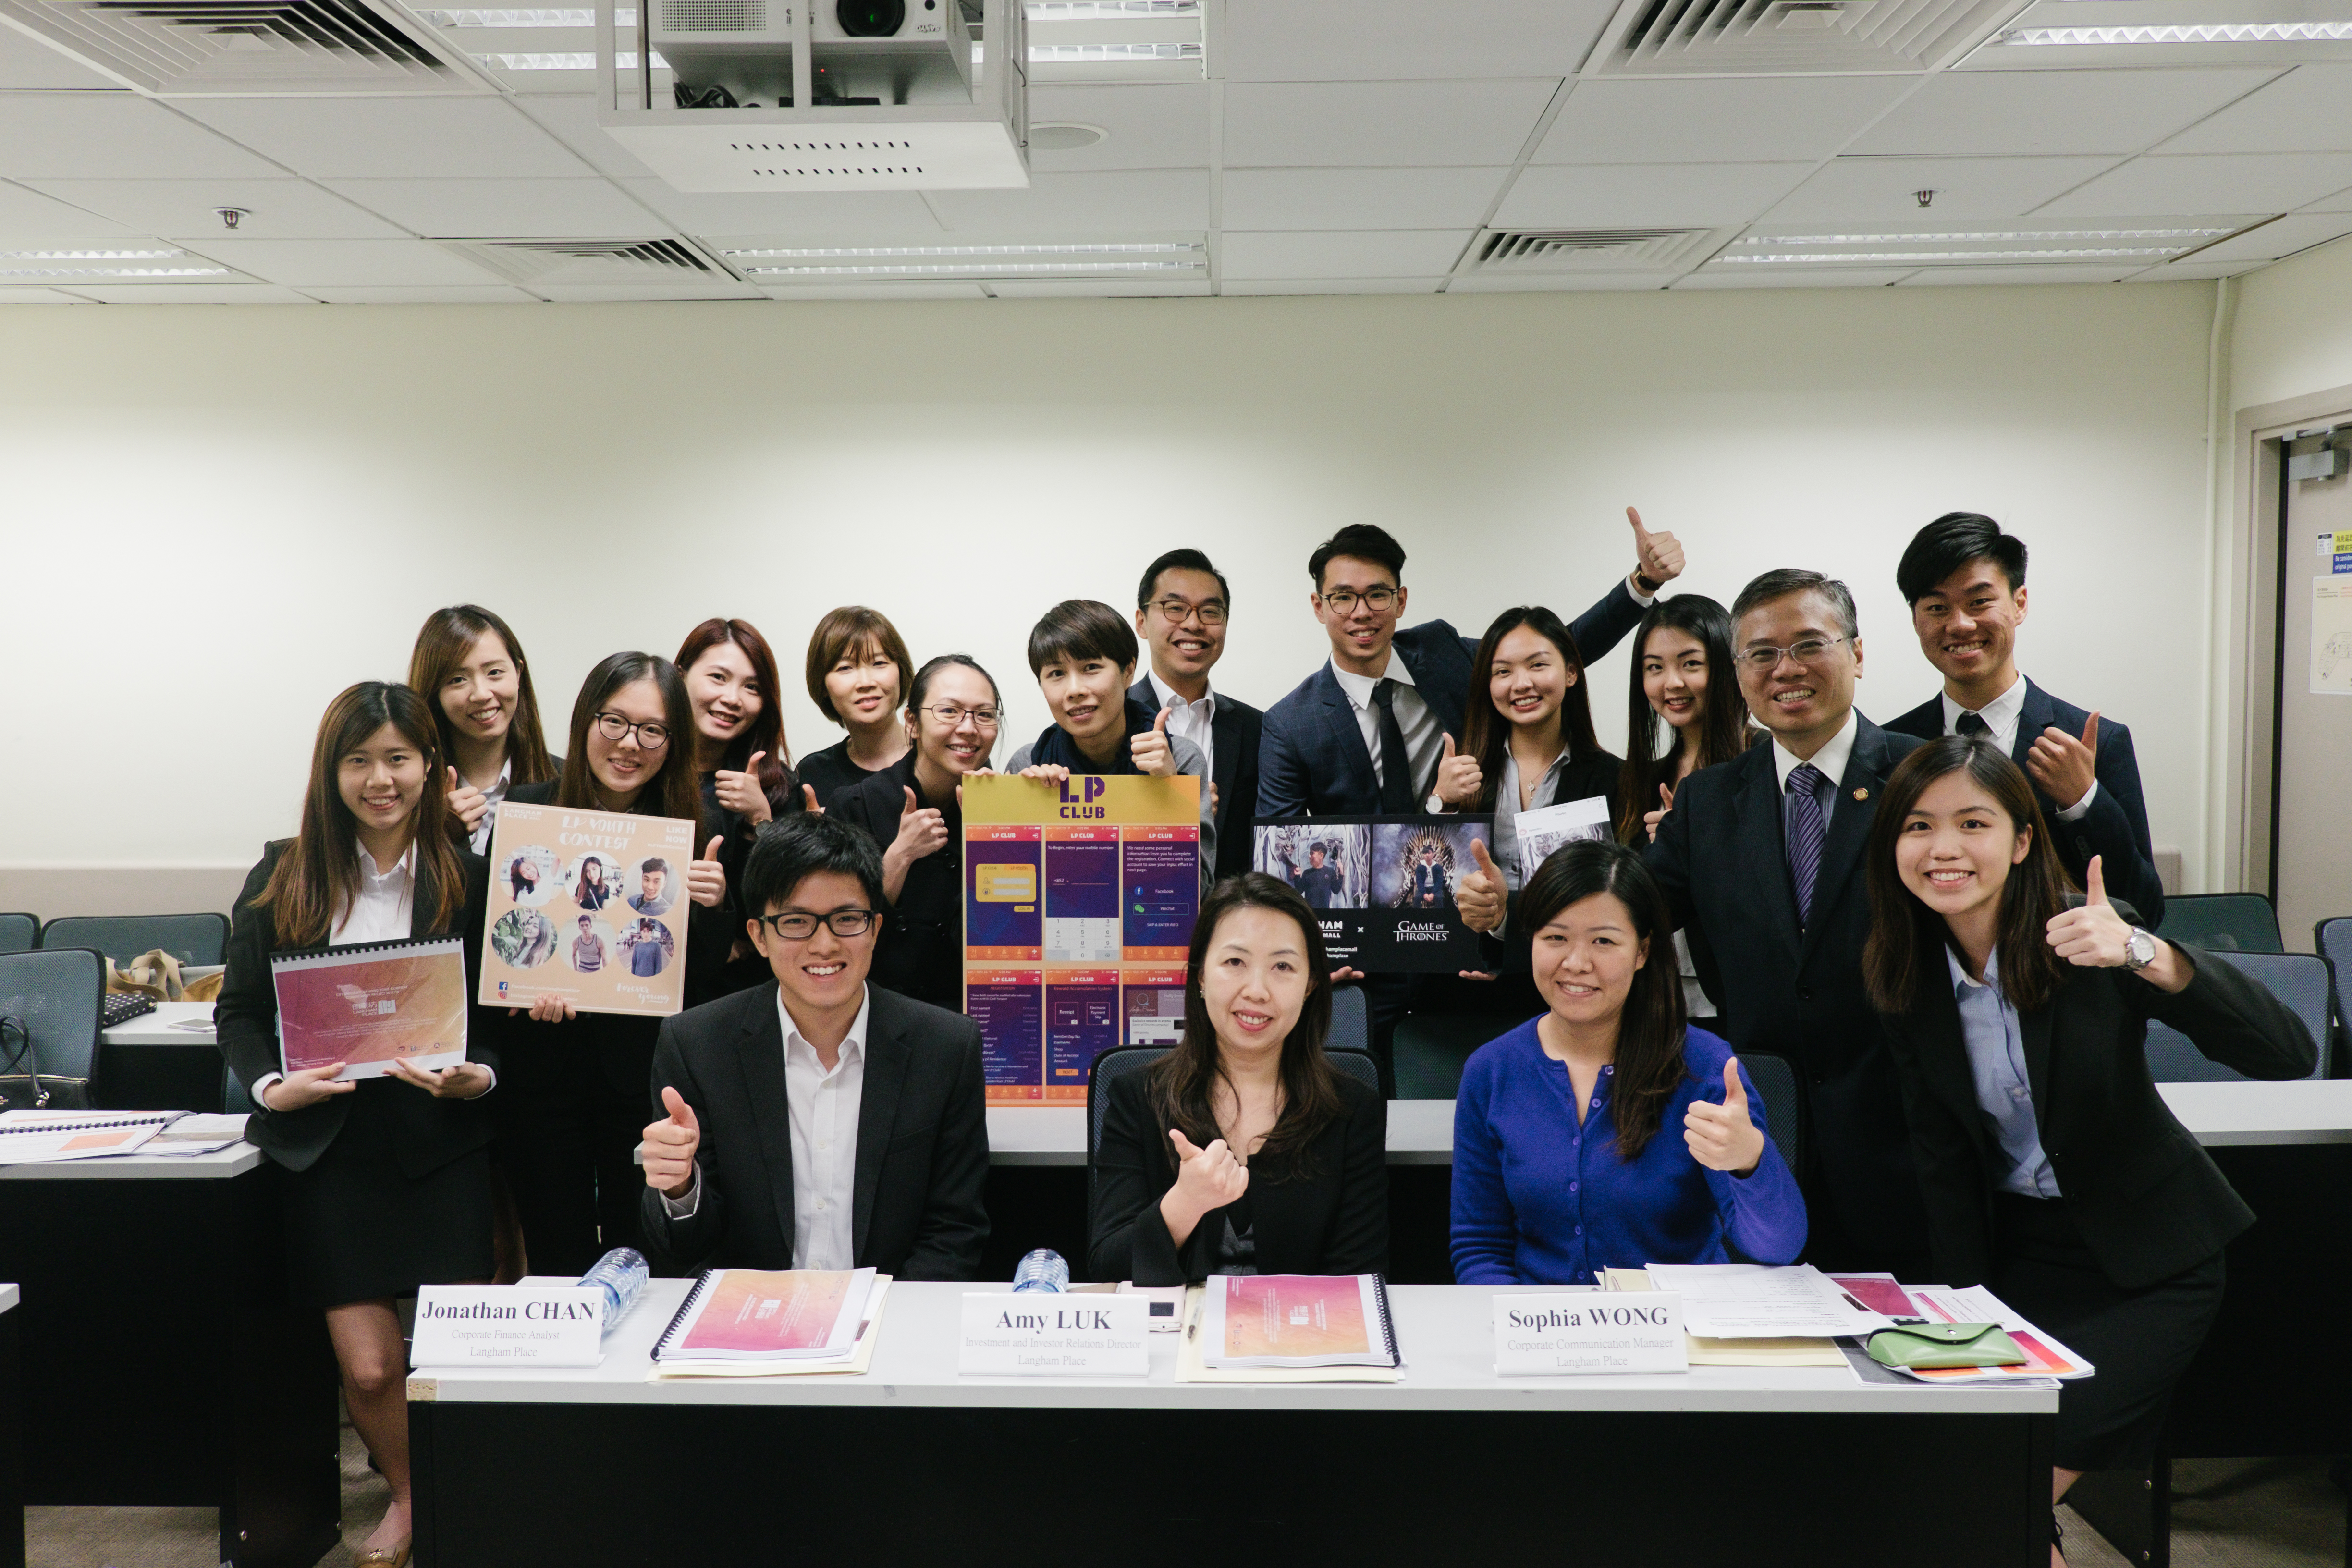 In collaboration with City University of Hong Kong to offer students a valuable taste of the real business world